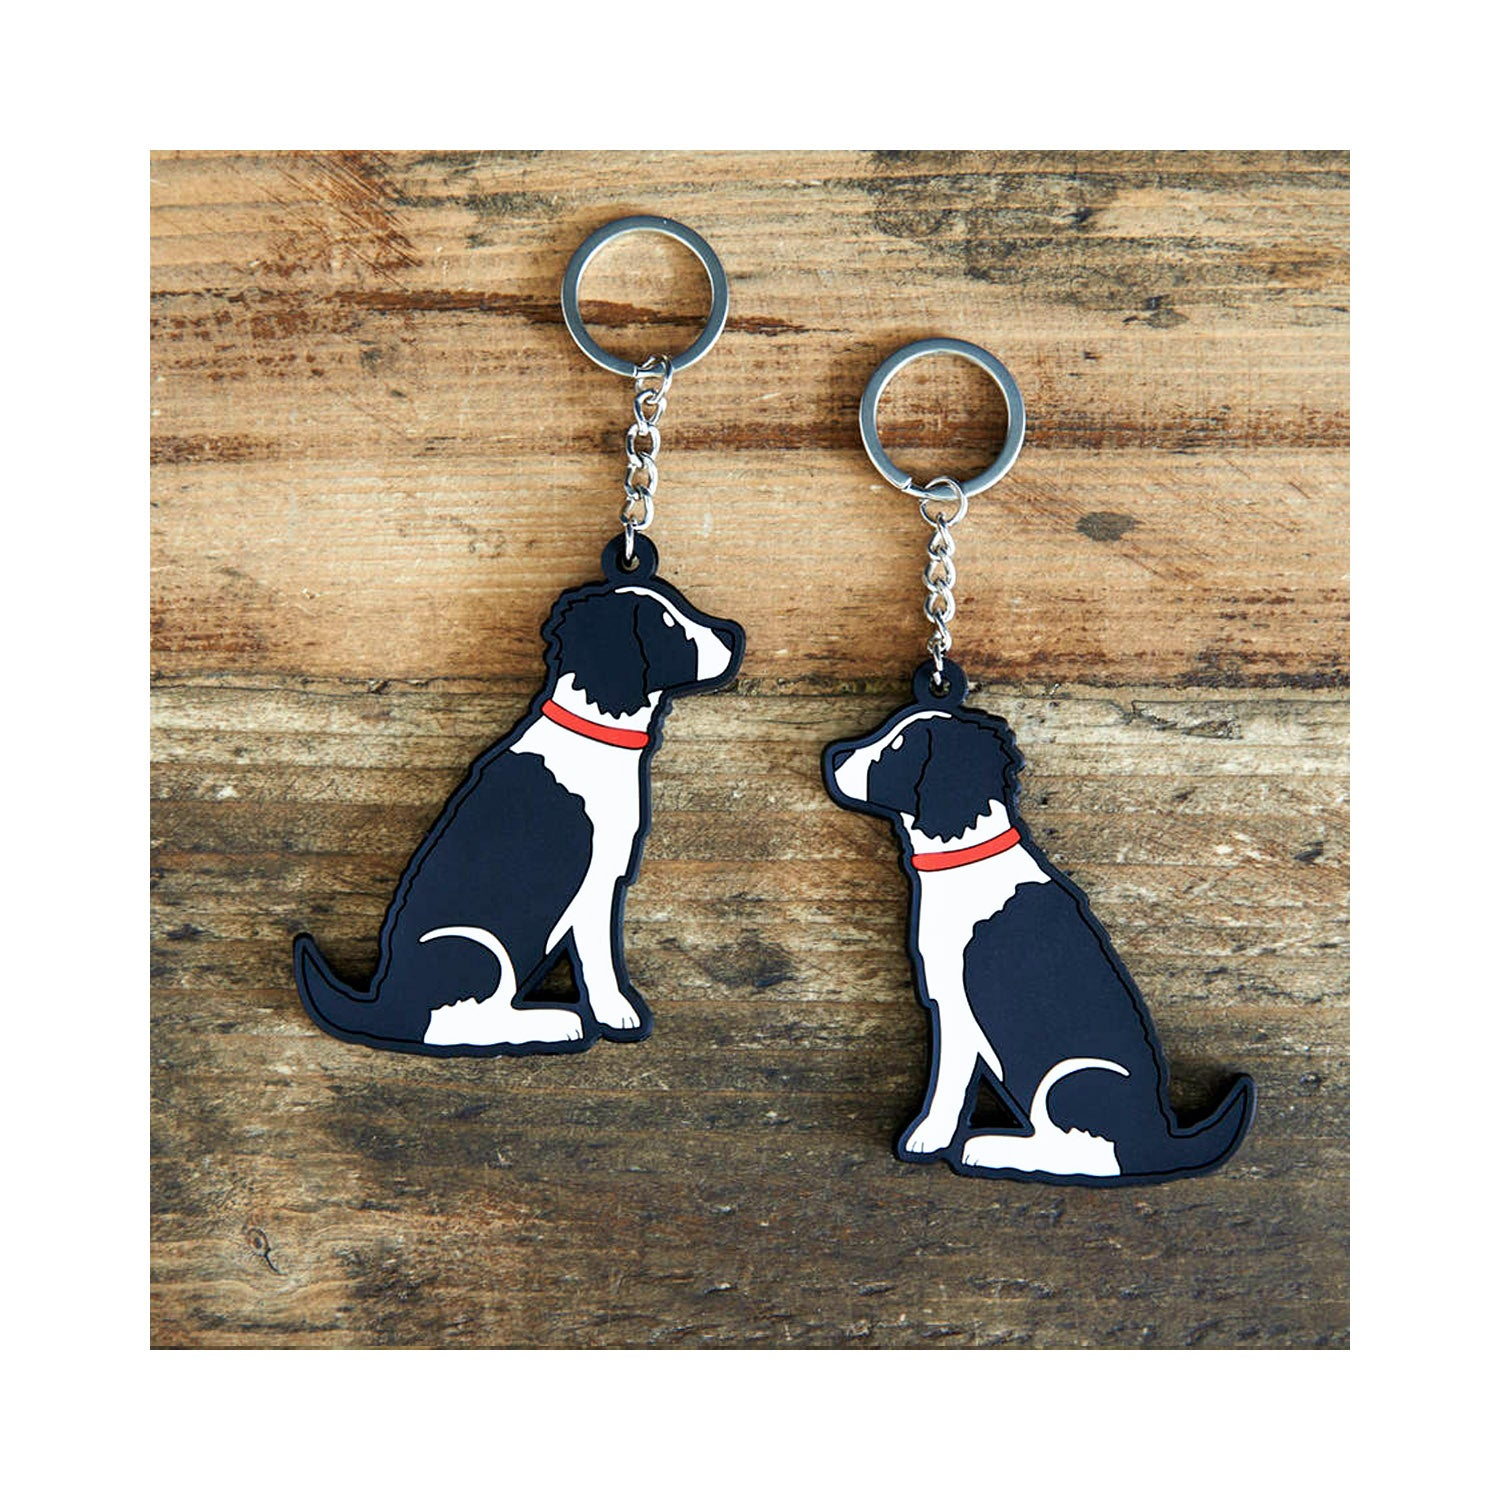 Dog Lover Gifts available at Dog Krazy Gifts  - George The Black & White Springer Spaniel Keyring - part of the Sweet William range available from Dog Krazy Gifts